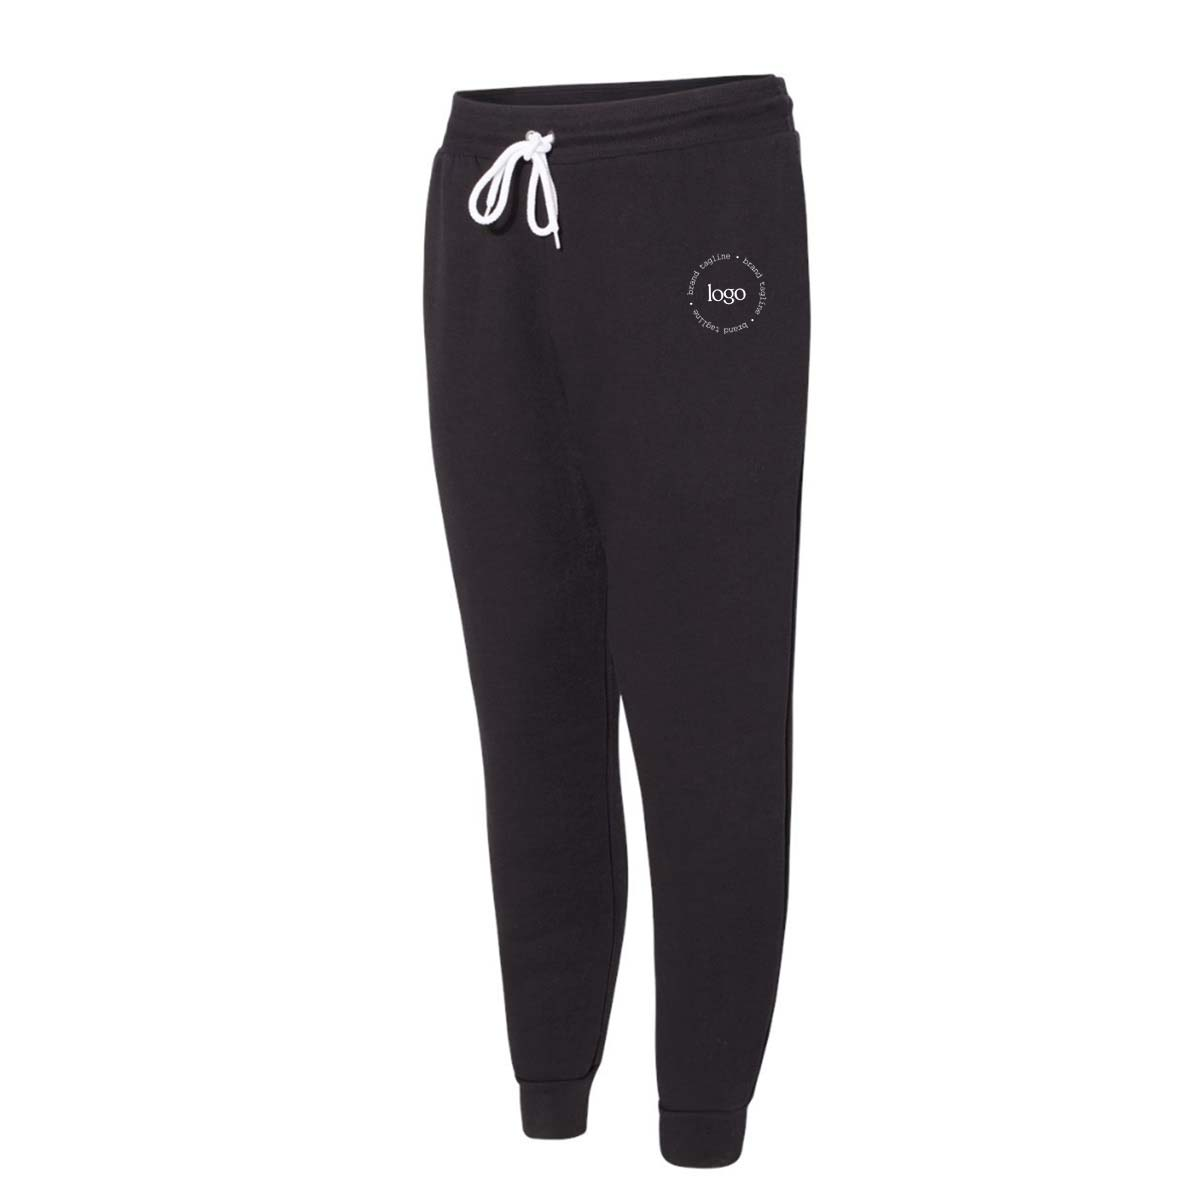 302817 adrien fleece joggers two color imprint one location